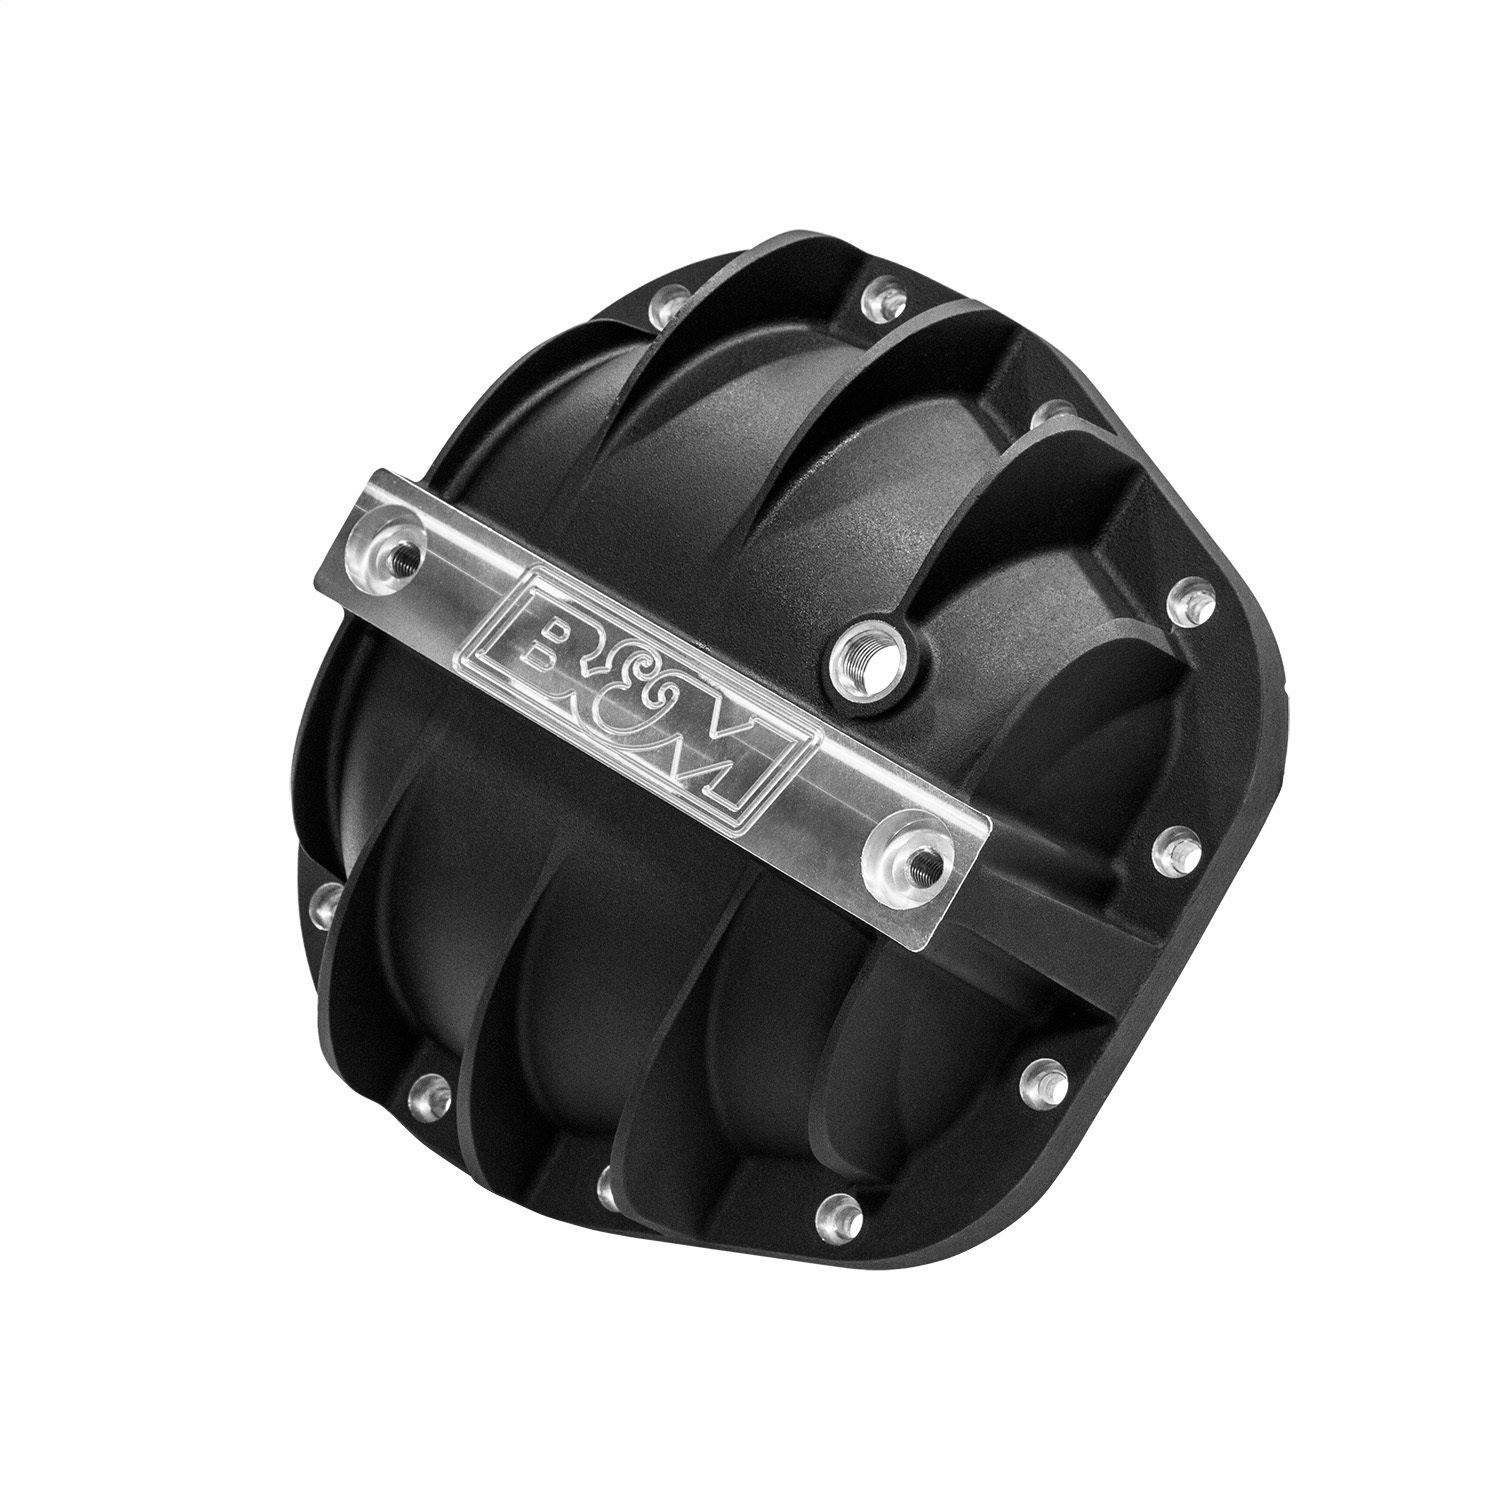 B&M 41299 Differential Cover For Use w/SterLing 10.25-10.5 in. Incl. Cover/Fill And Drain Plugs/Bolts/Washers/Load Bolts/Nuts Black Differential Cover